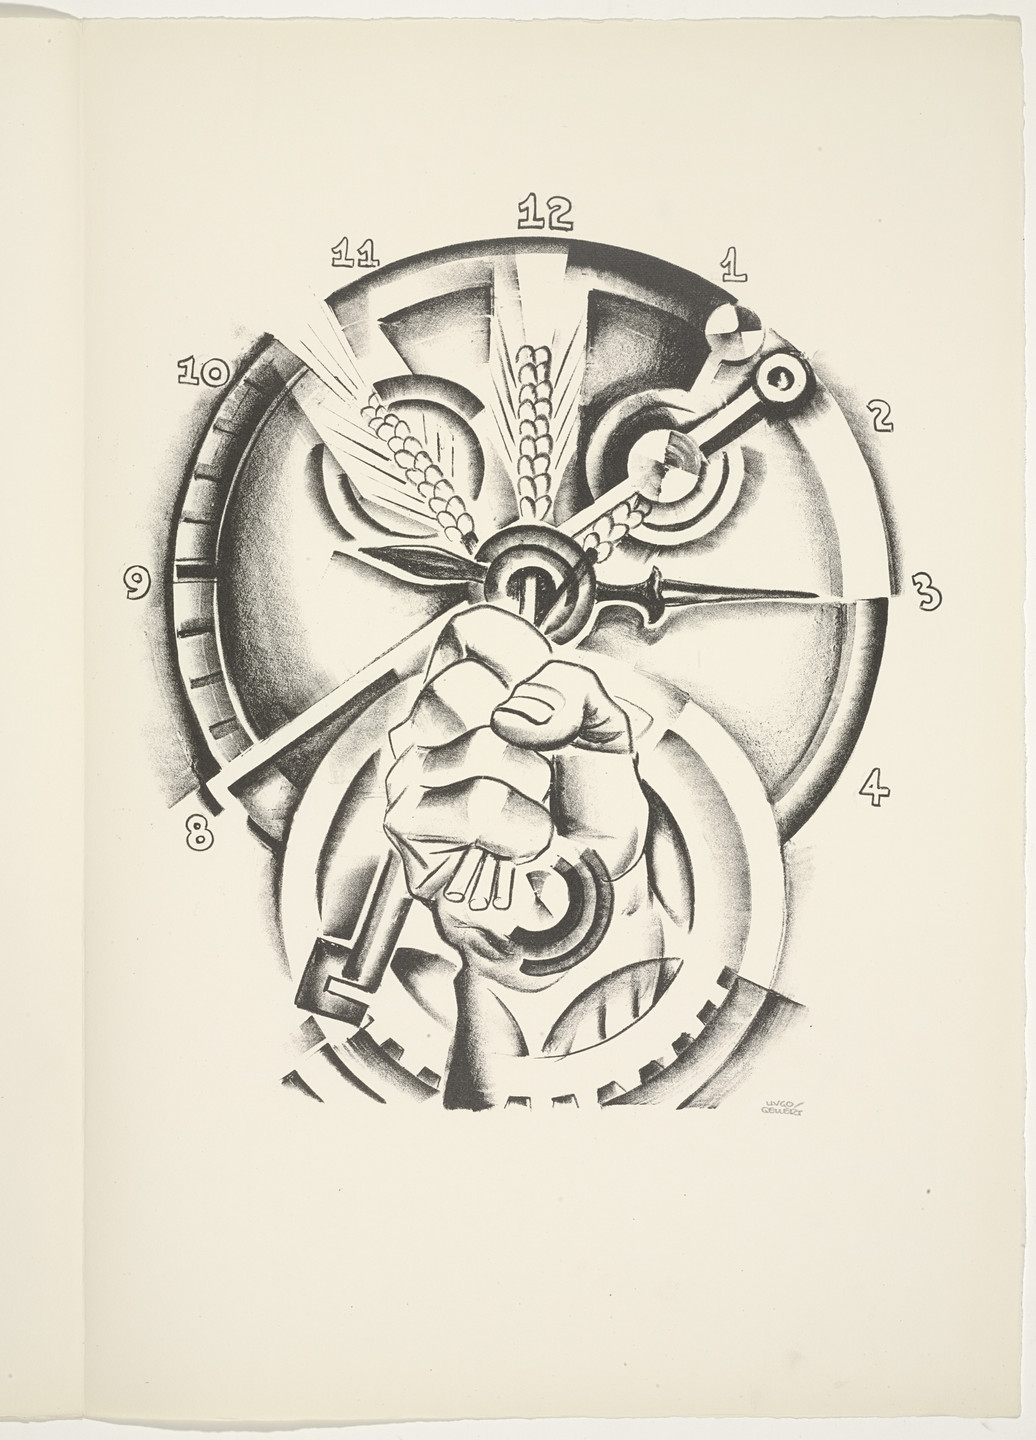 Hugo Gellert. Plate (folio 48) from 'Capital' in Pictures. 1933